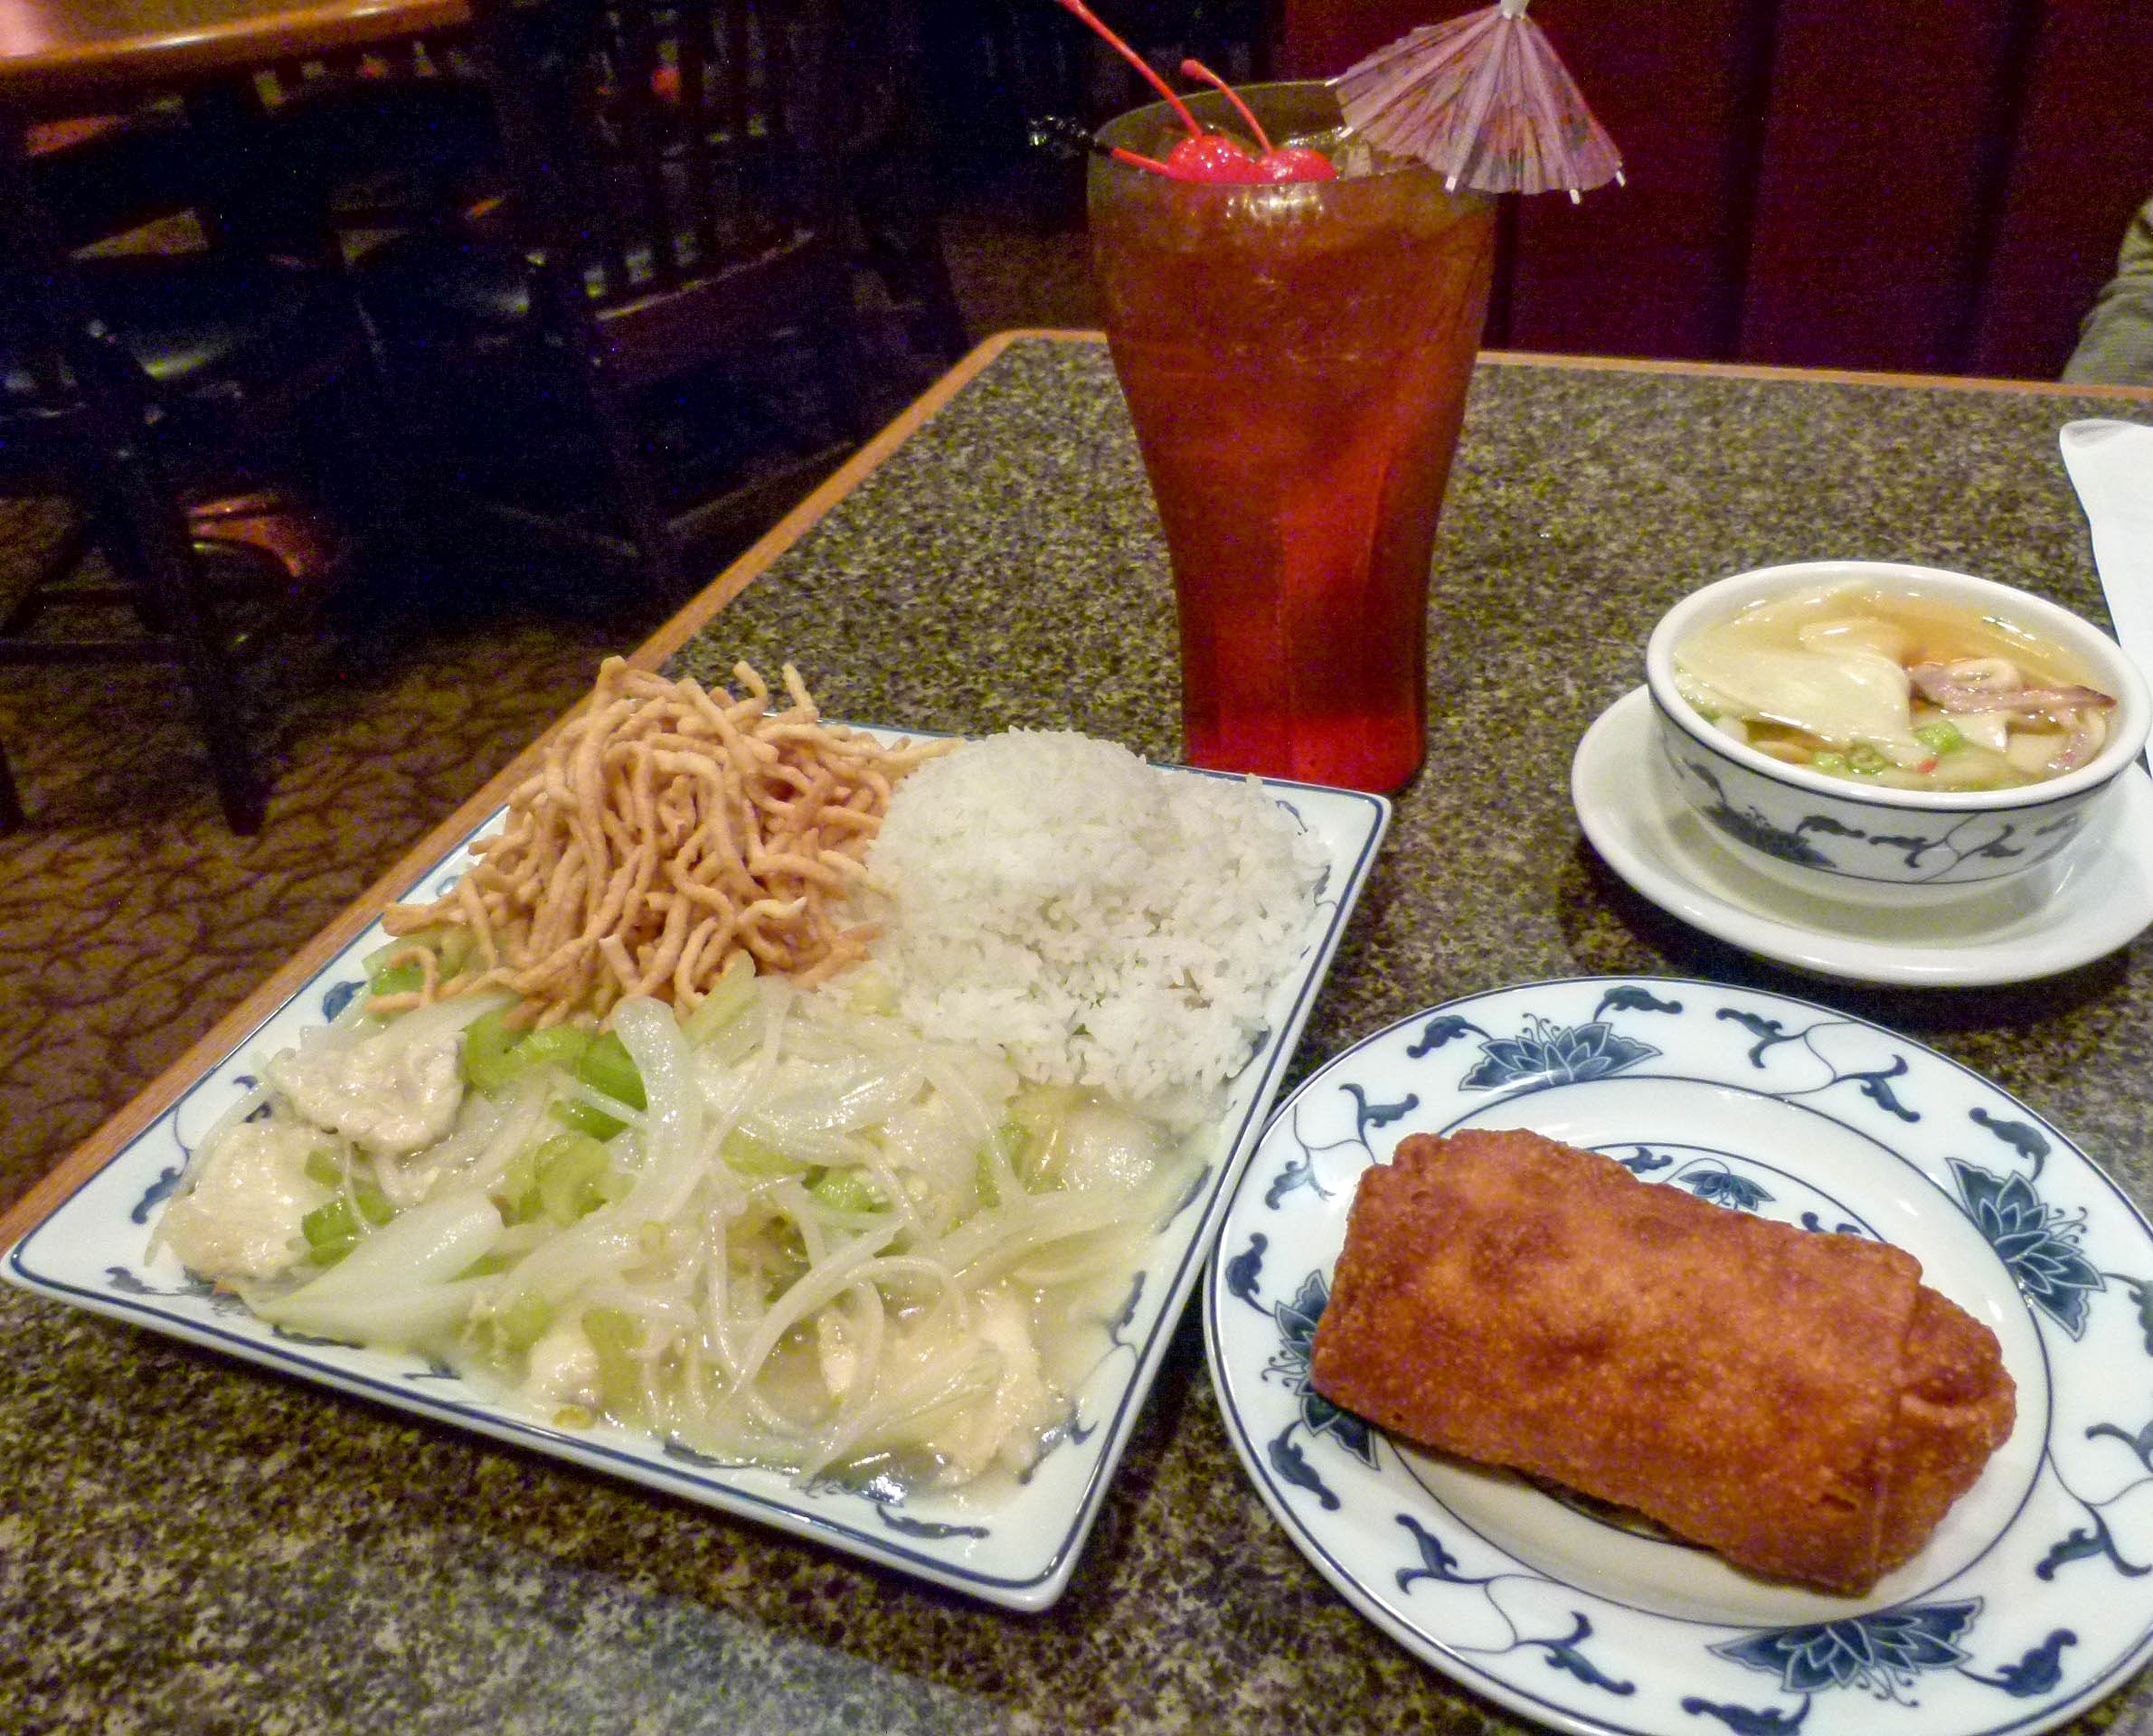 This meal is what I used to order as a young child with my family at Chinatown Inn.